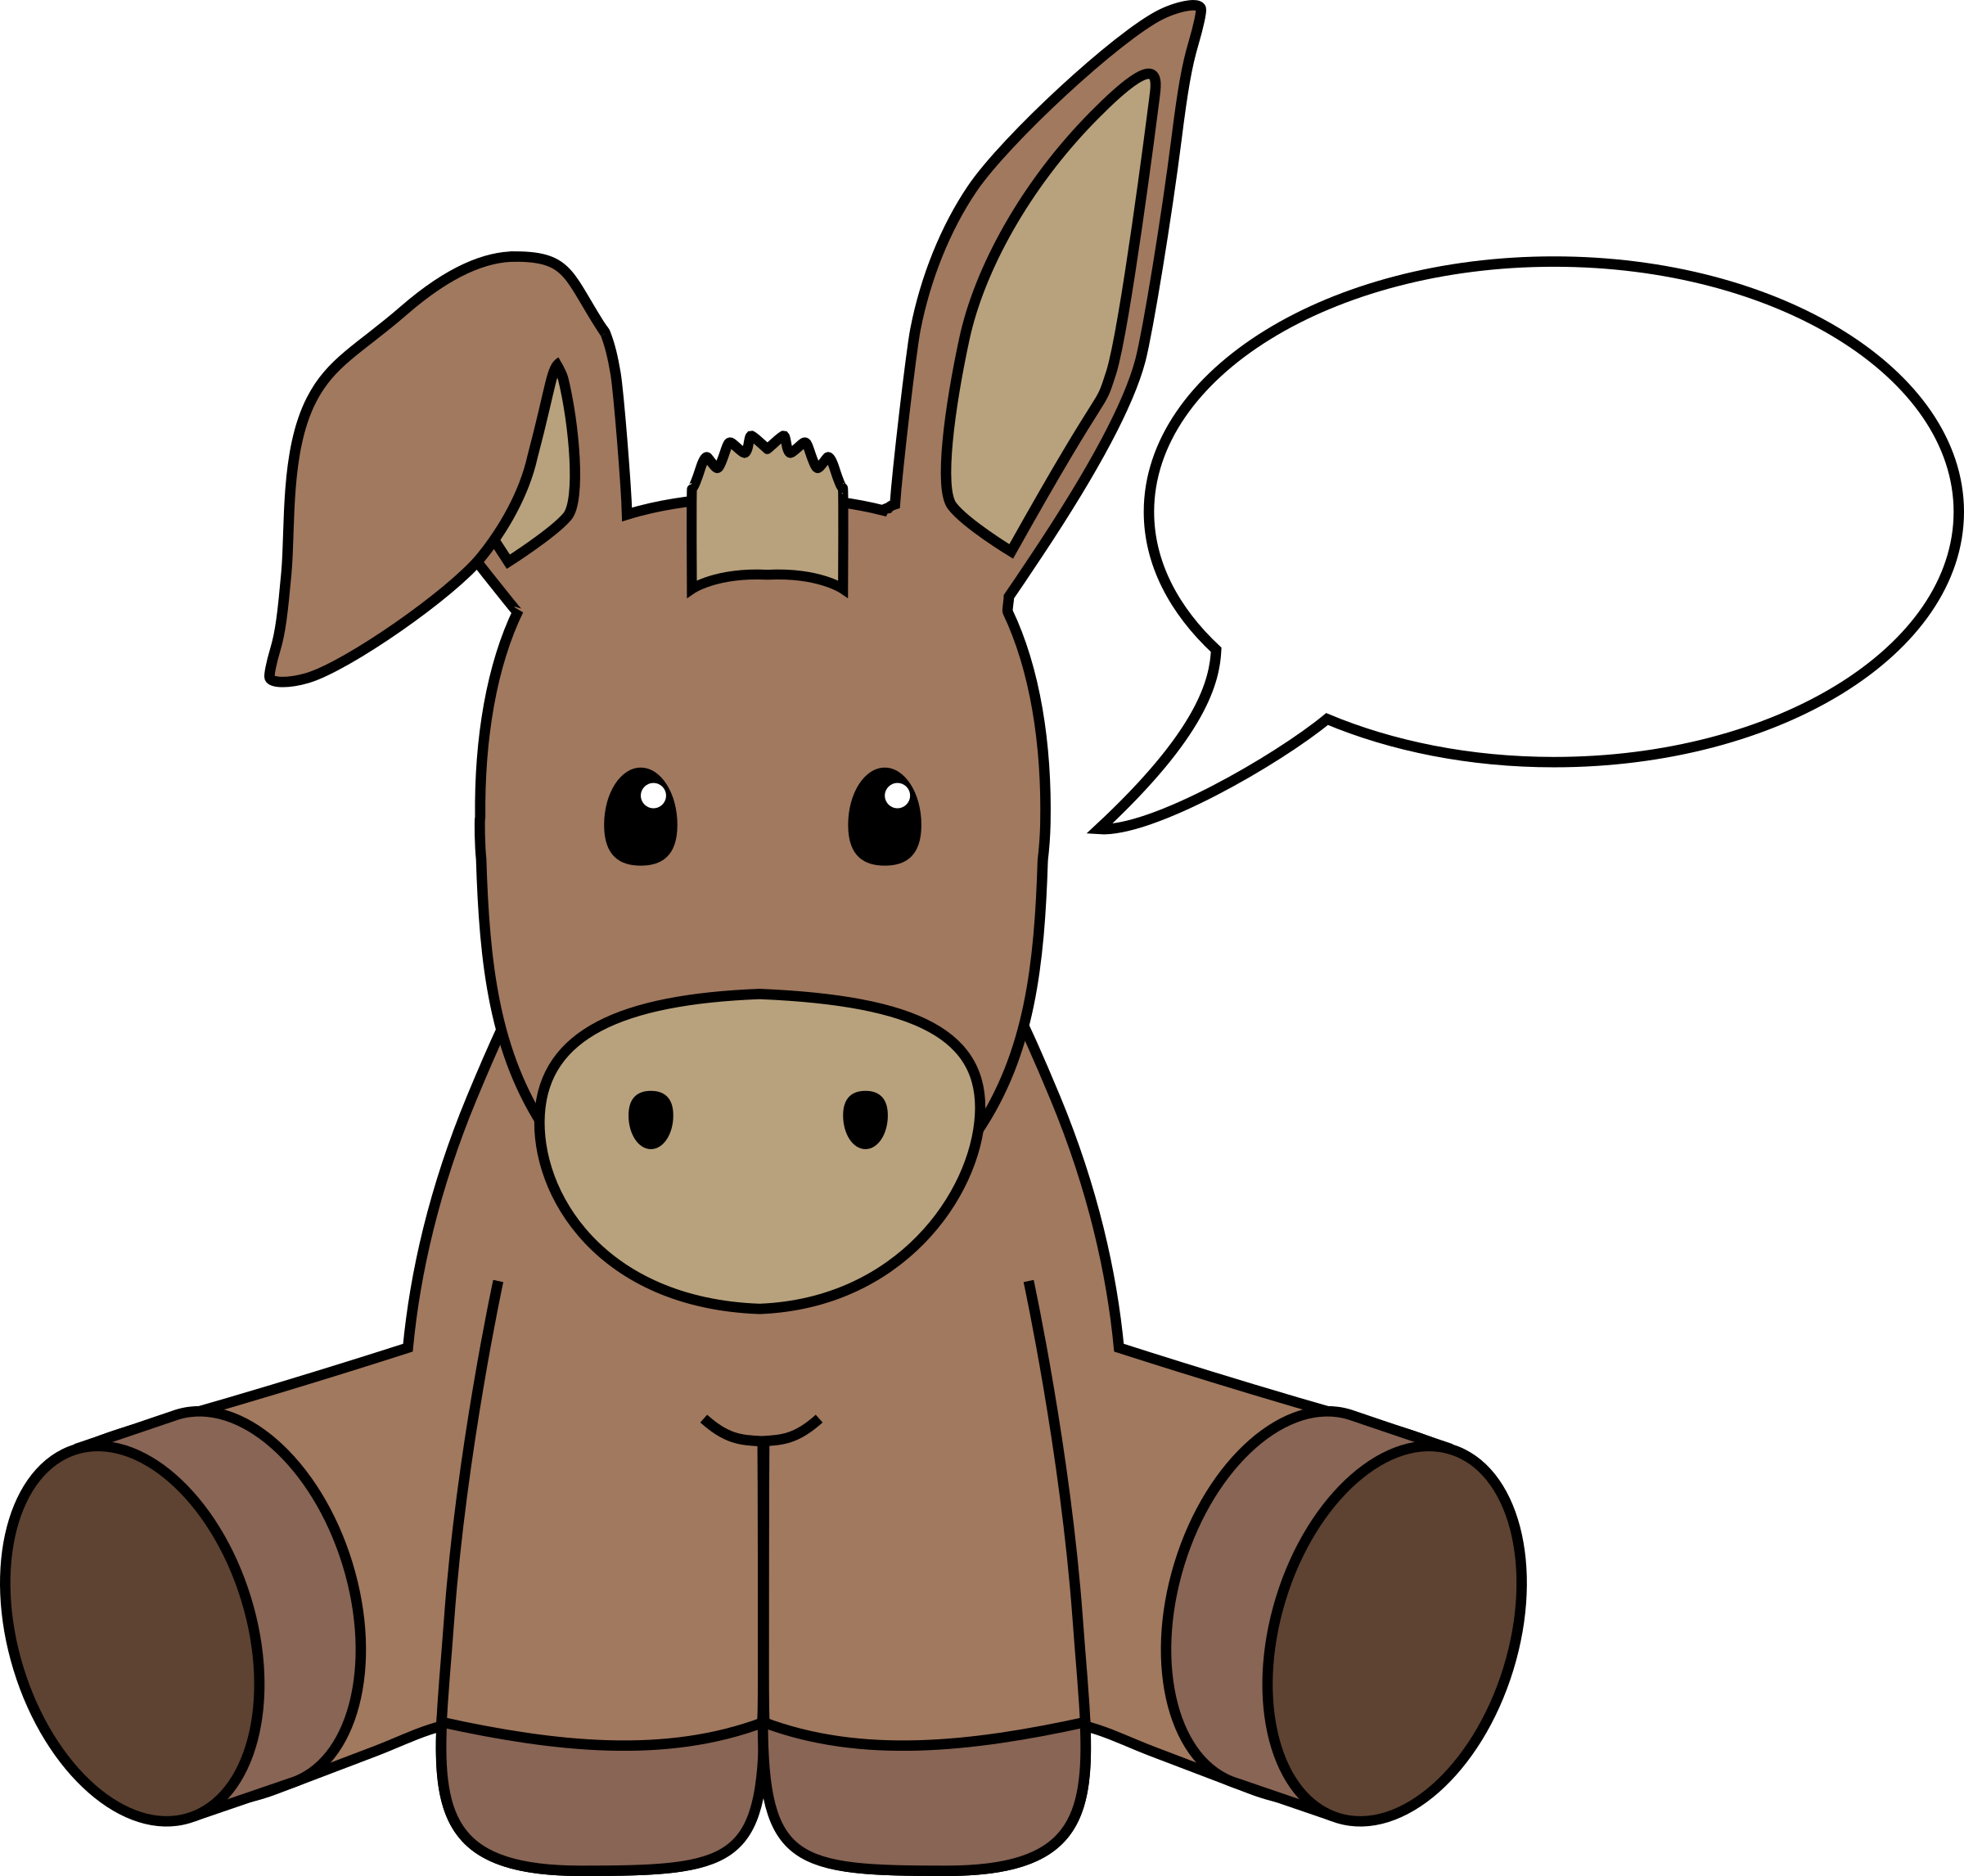 Politics clipart donkey. Help jazz up my